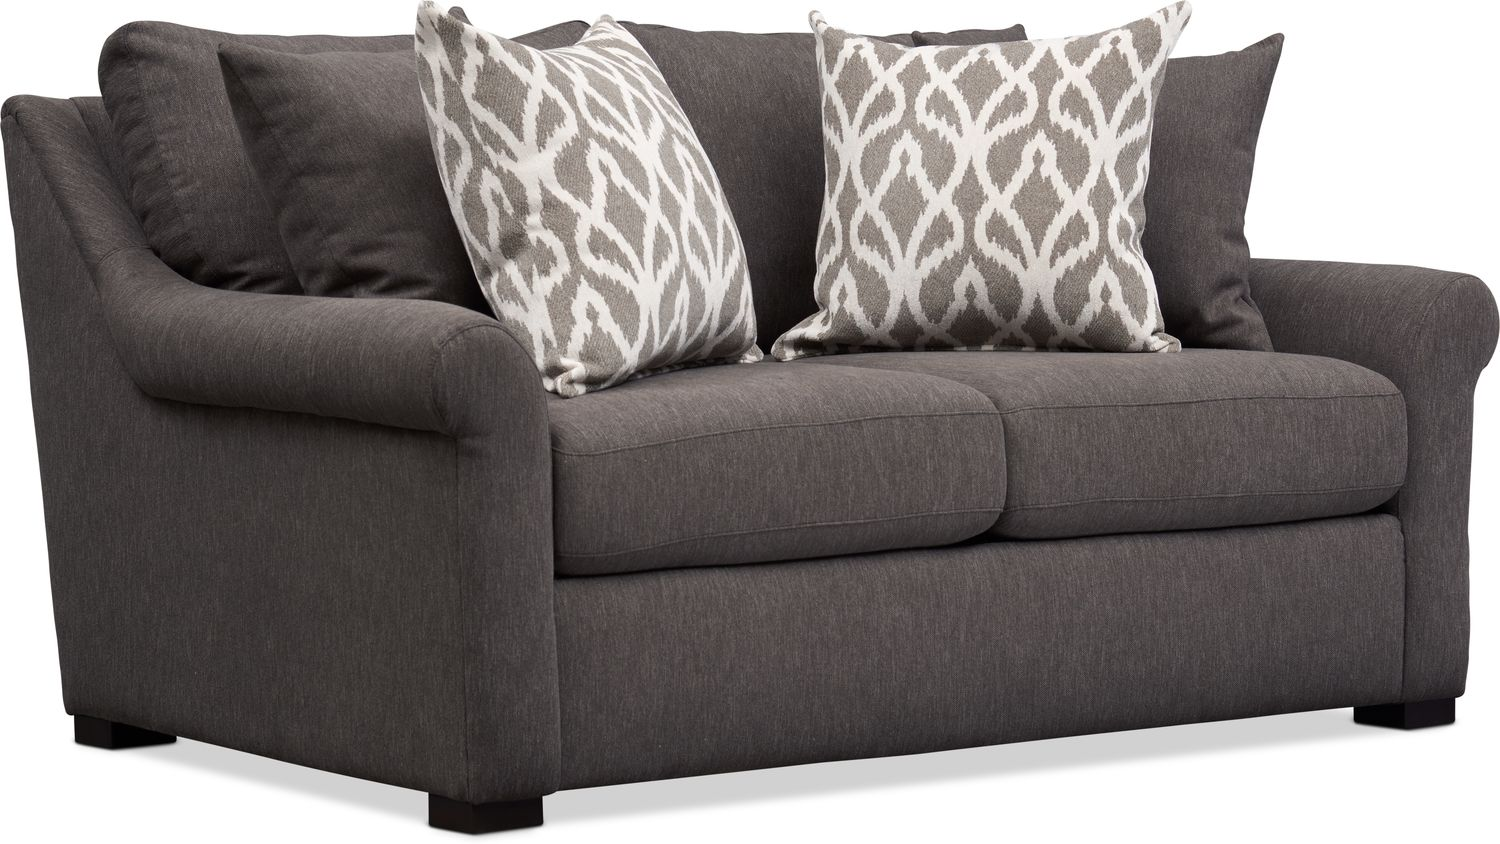 Living Room Furniture - Robertson Loveseat - Brown